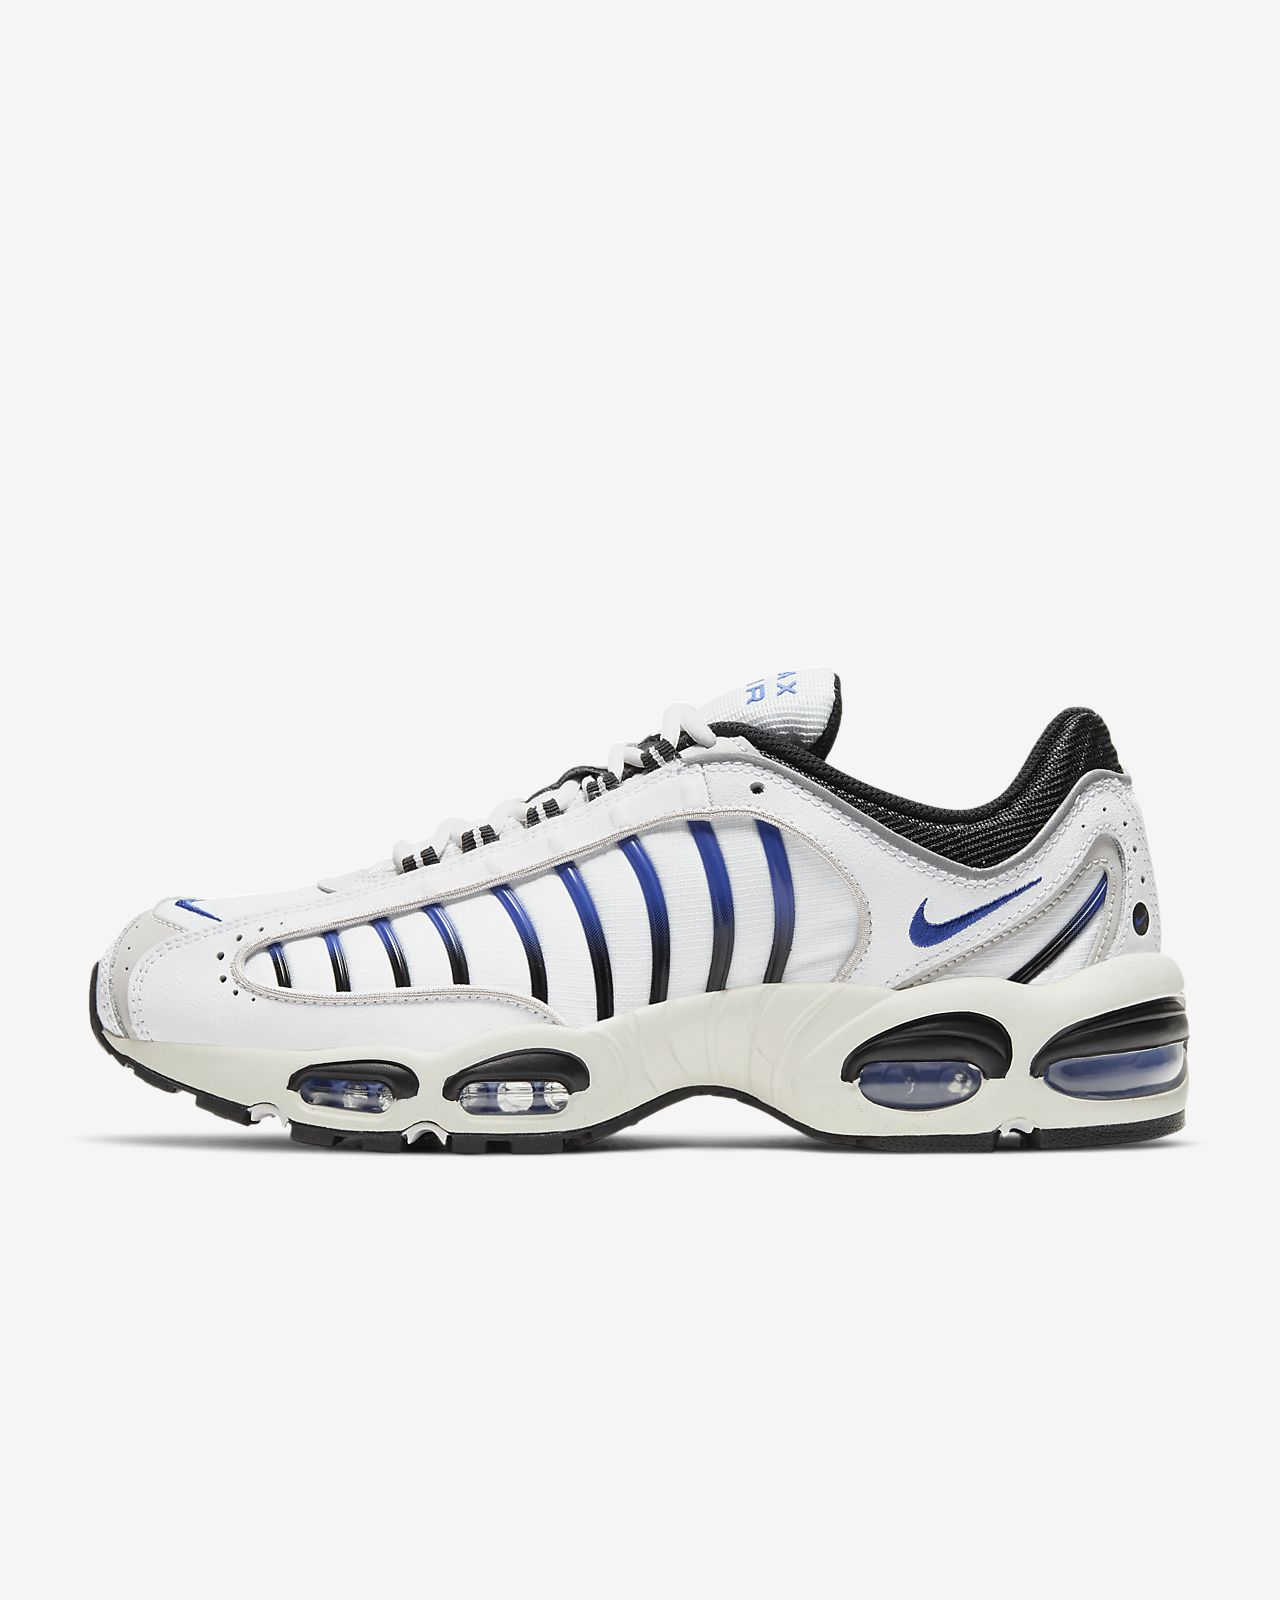 Nike Air Max Tailwind IV Men's Shoes